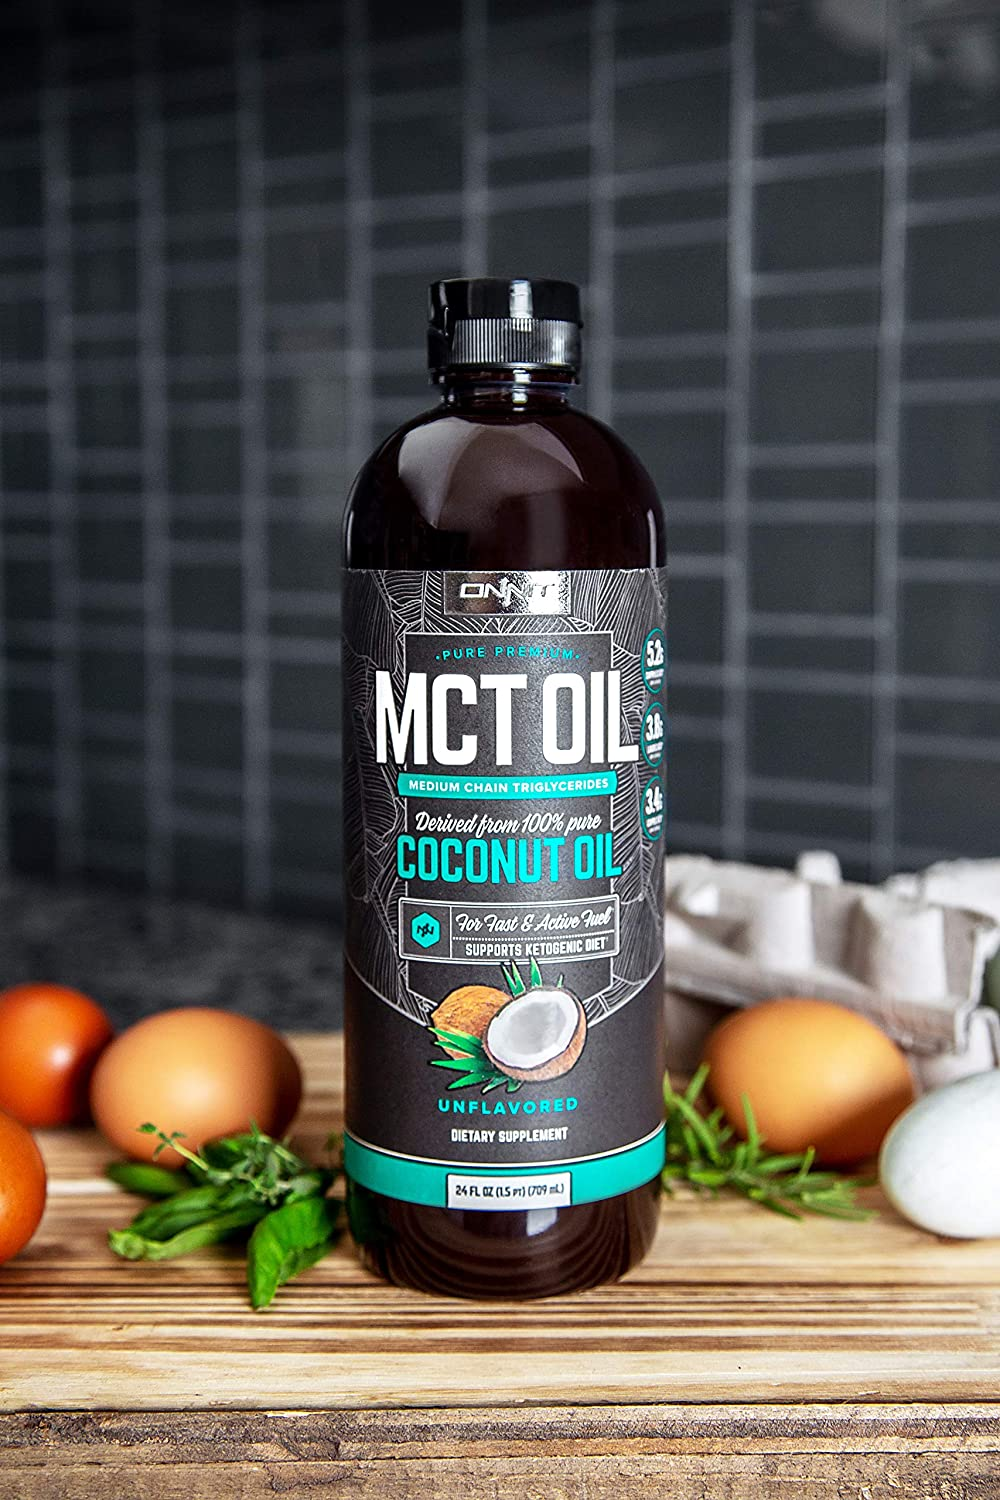 onnit MCT oil coconut oil bottle in the kitchen